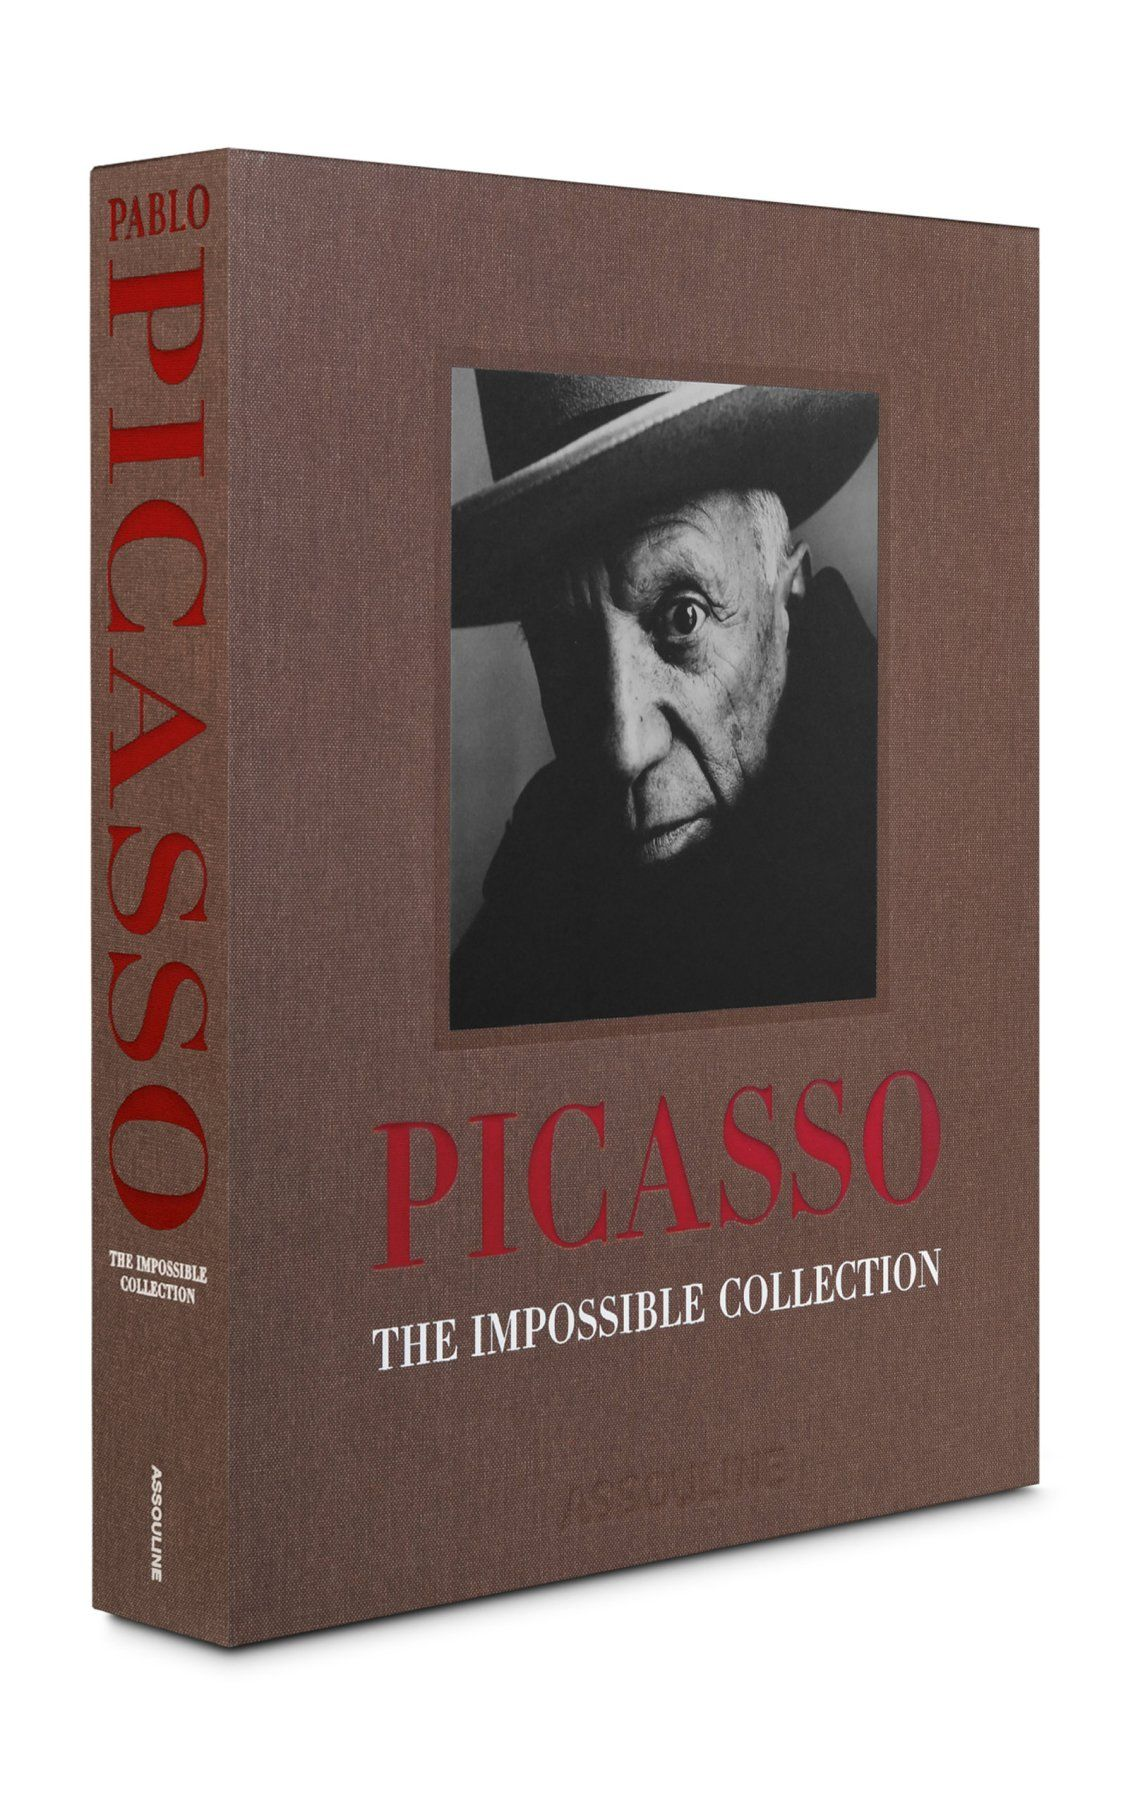 Picasso The Impossible Collection Hardcover Book By Assouline Moda Operandi Pablo Picasso Picasso Lovers Art